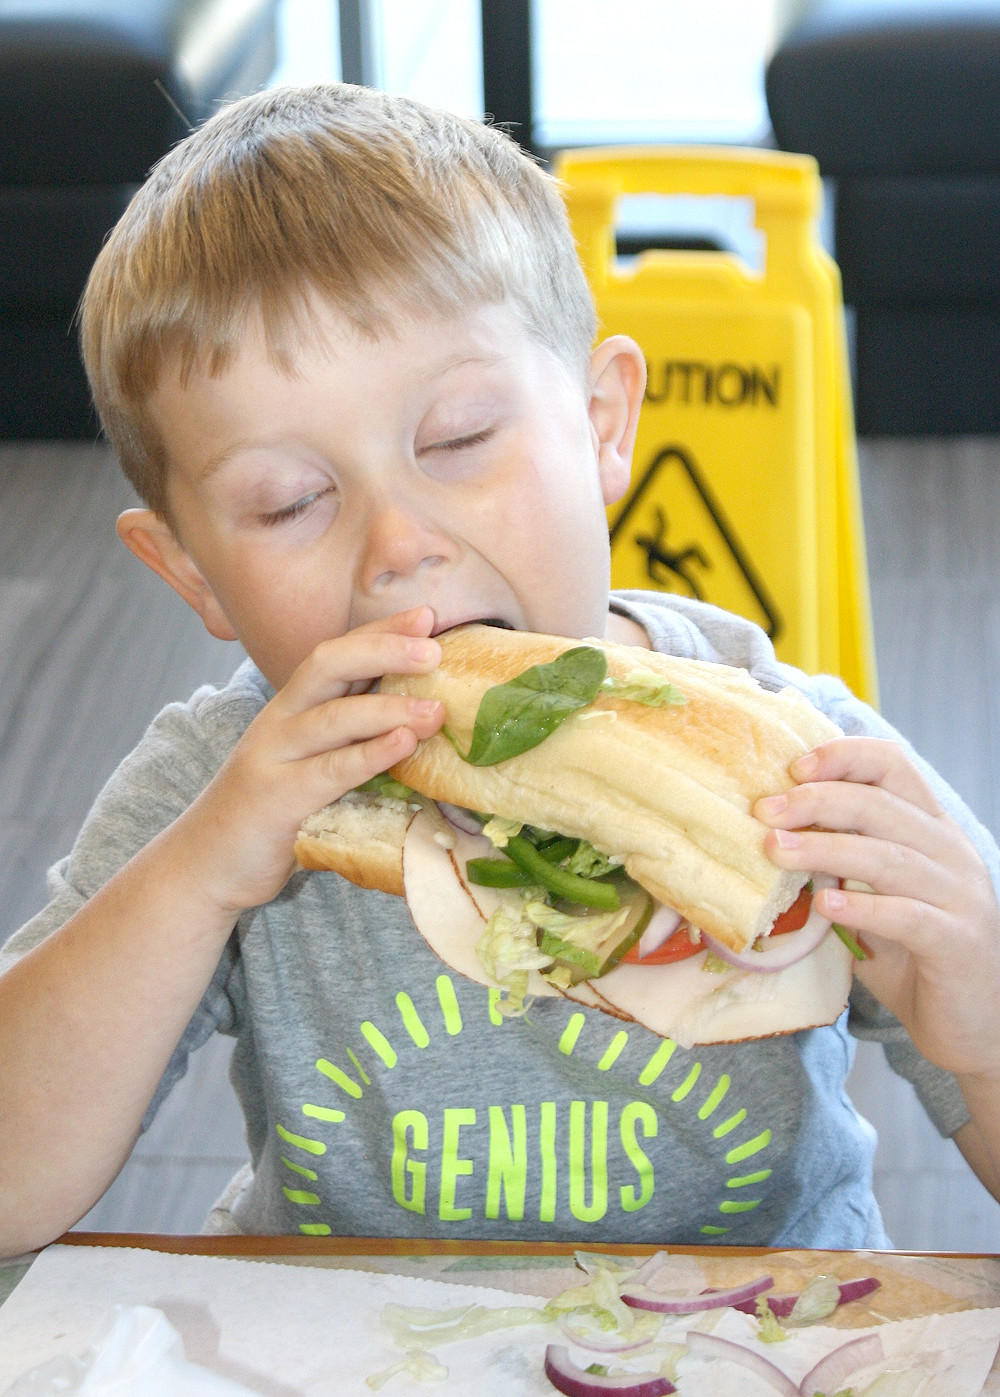 OWEN CULBERSON closed his eyes as he attempted to bite down on a huge Subway sandwich he built himself Monday in the restaurant chain's World Food Day promotion.